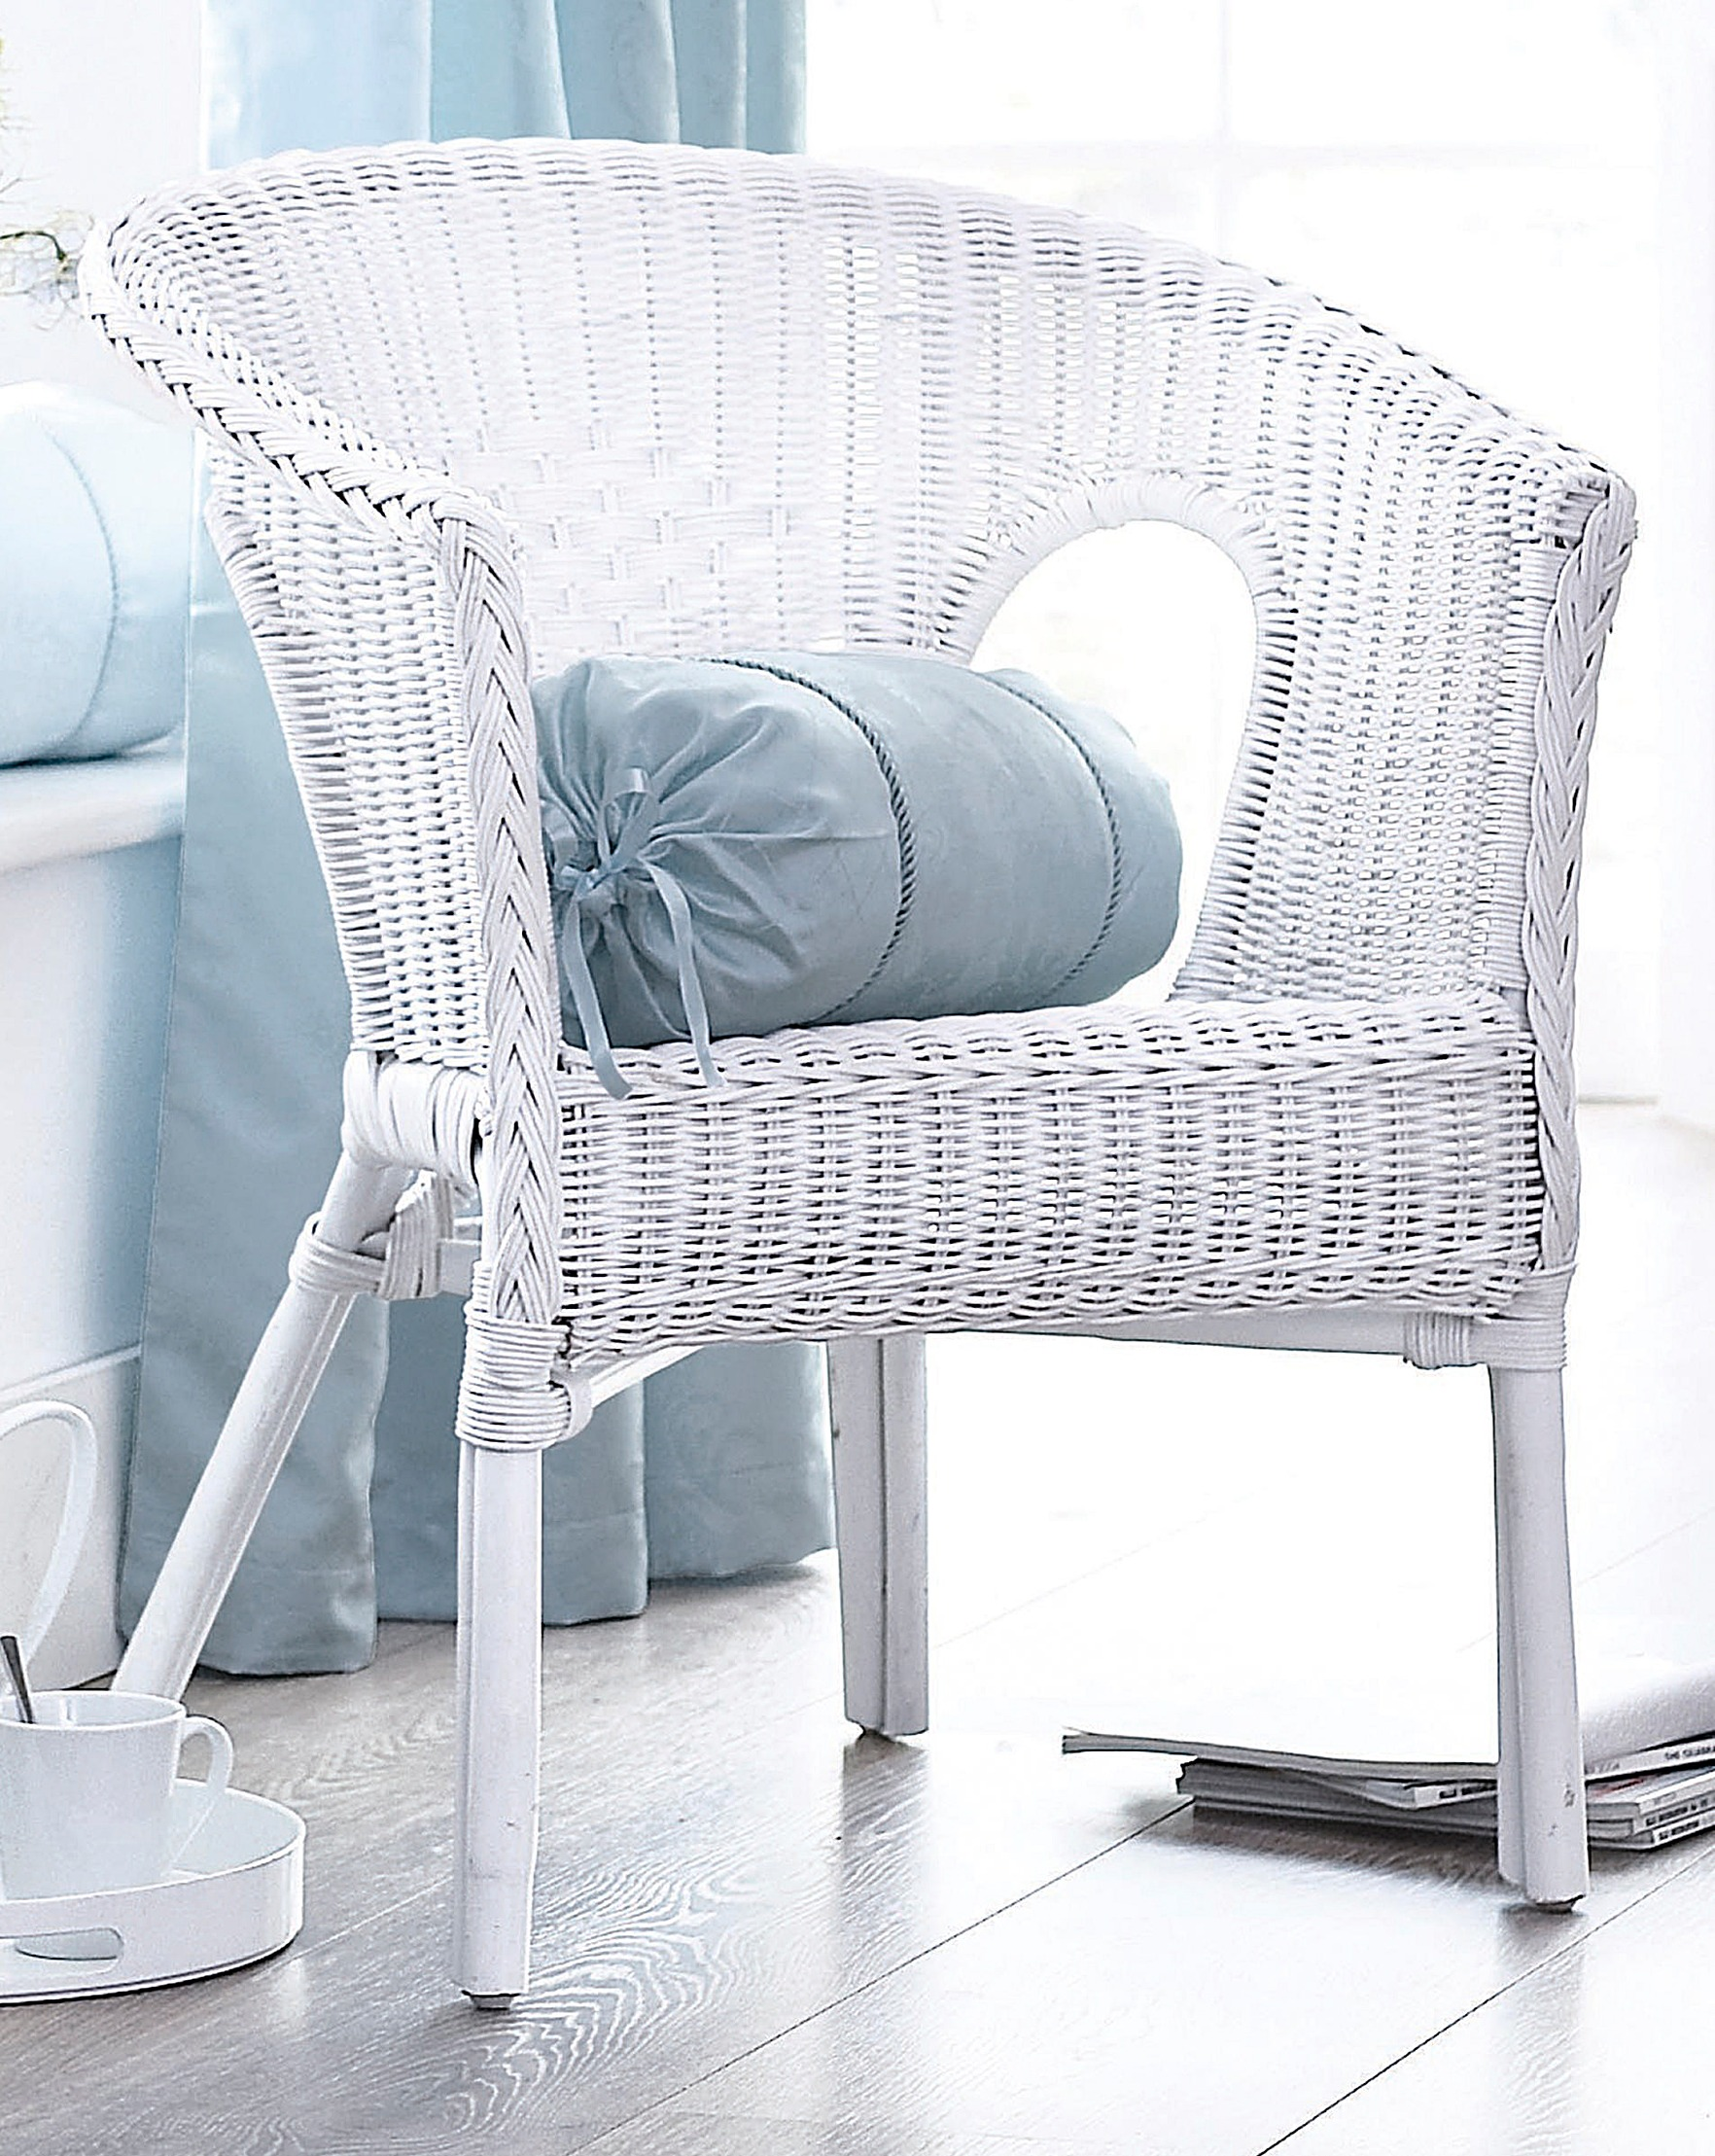 wicker chair | house of bath